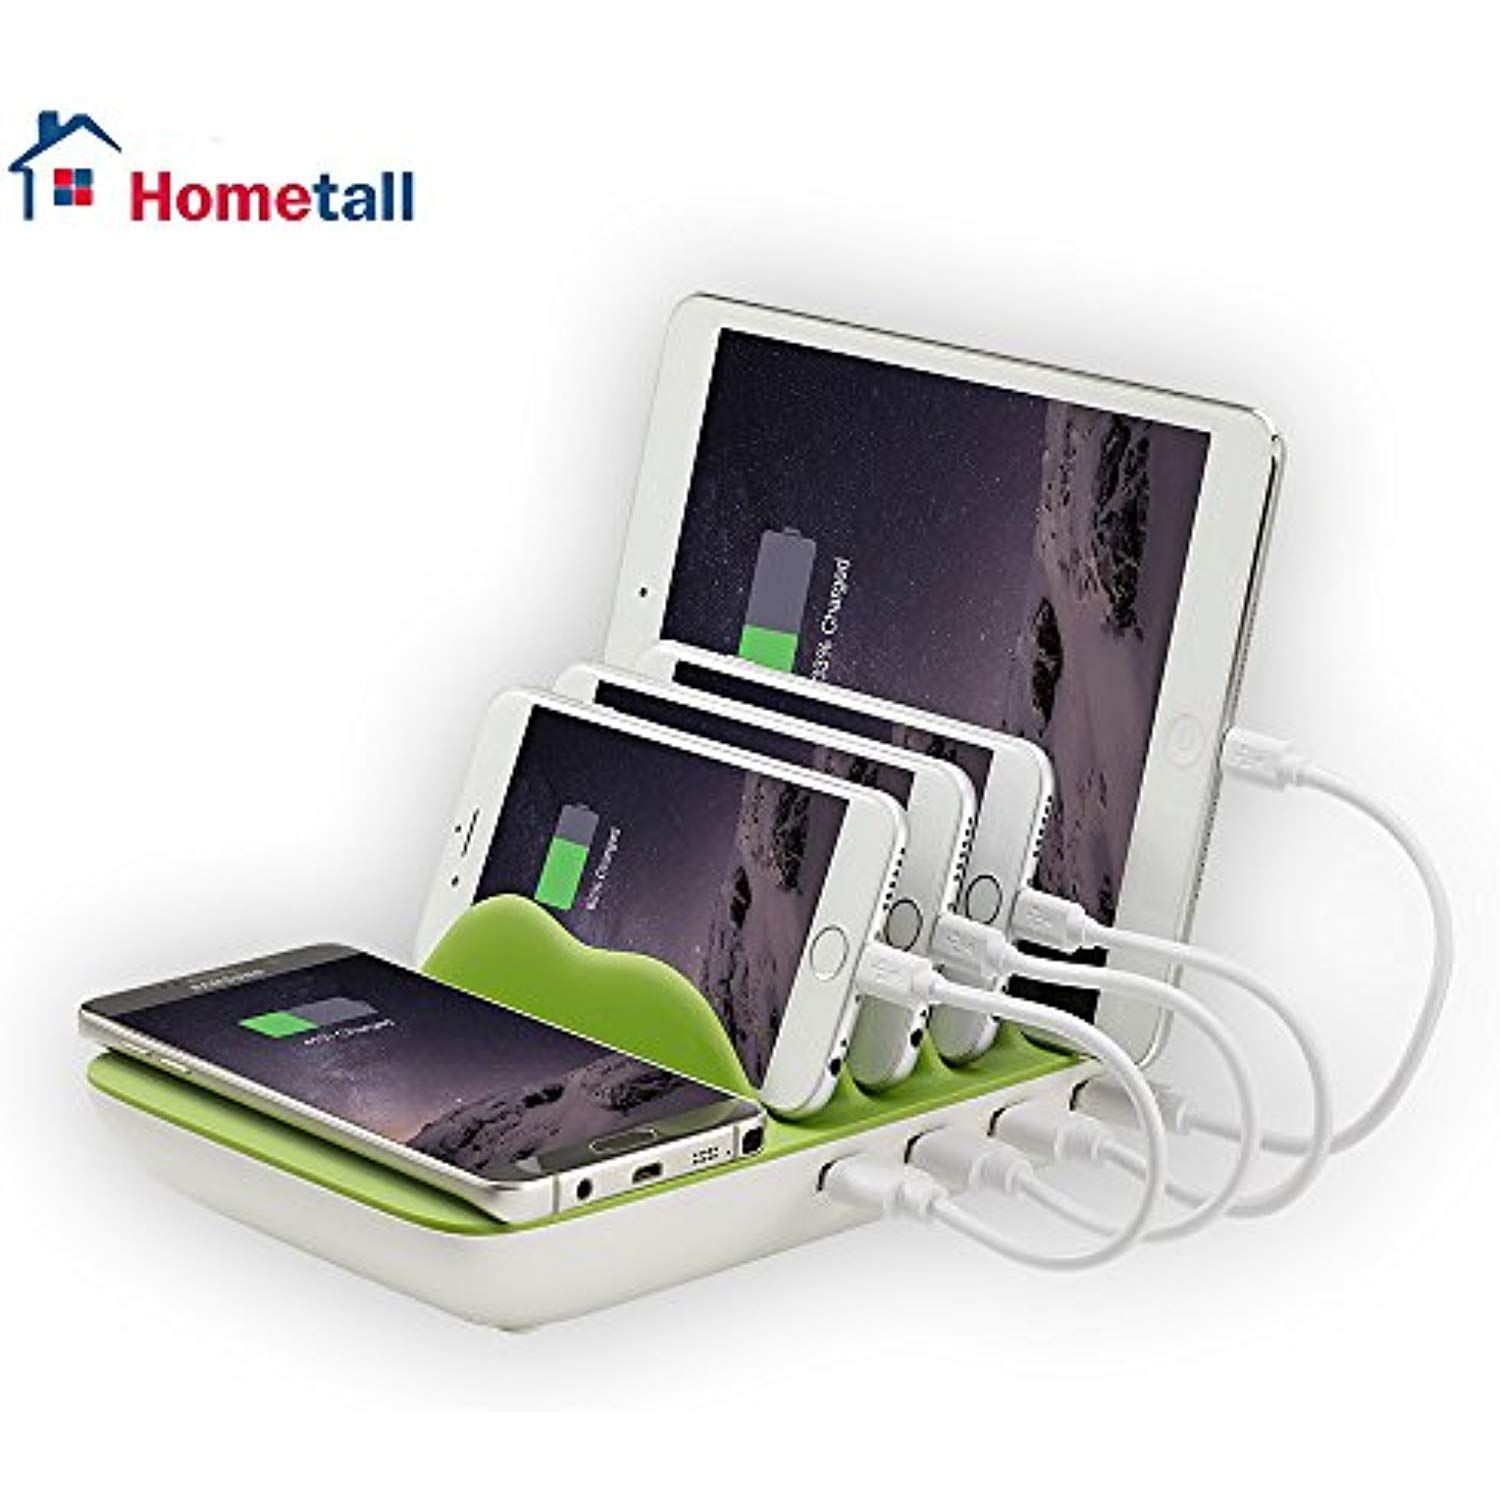 Handy Qi Charging Station For Multiple Devices Hometall 4 Port Usb Charger